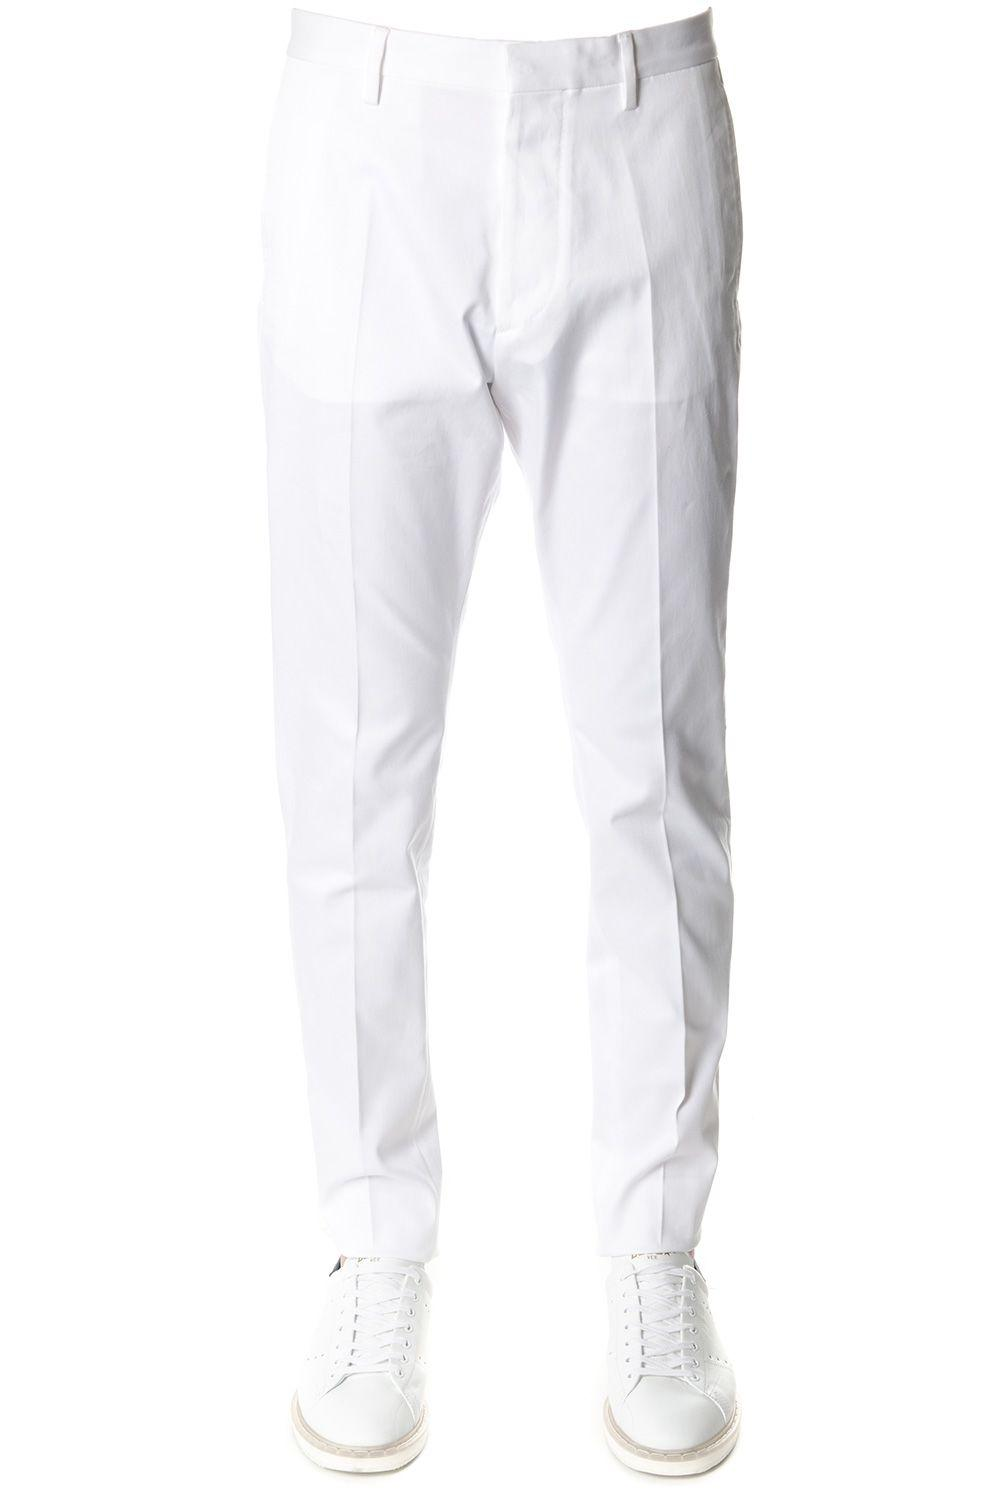 Dsquared2 White Cotton Tailored Trousers